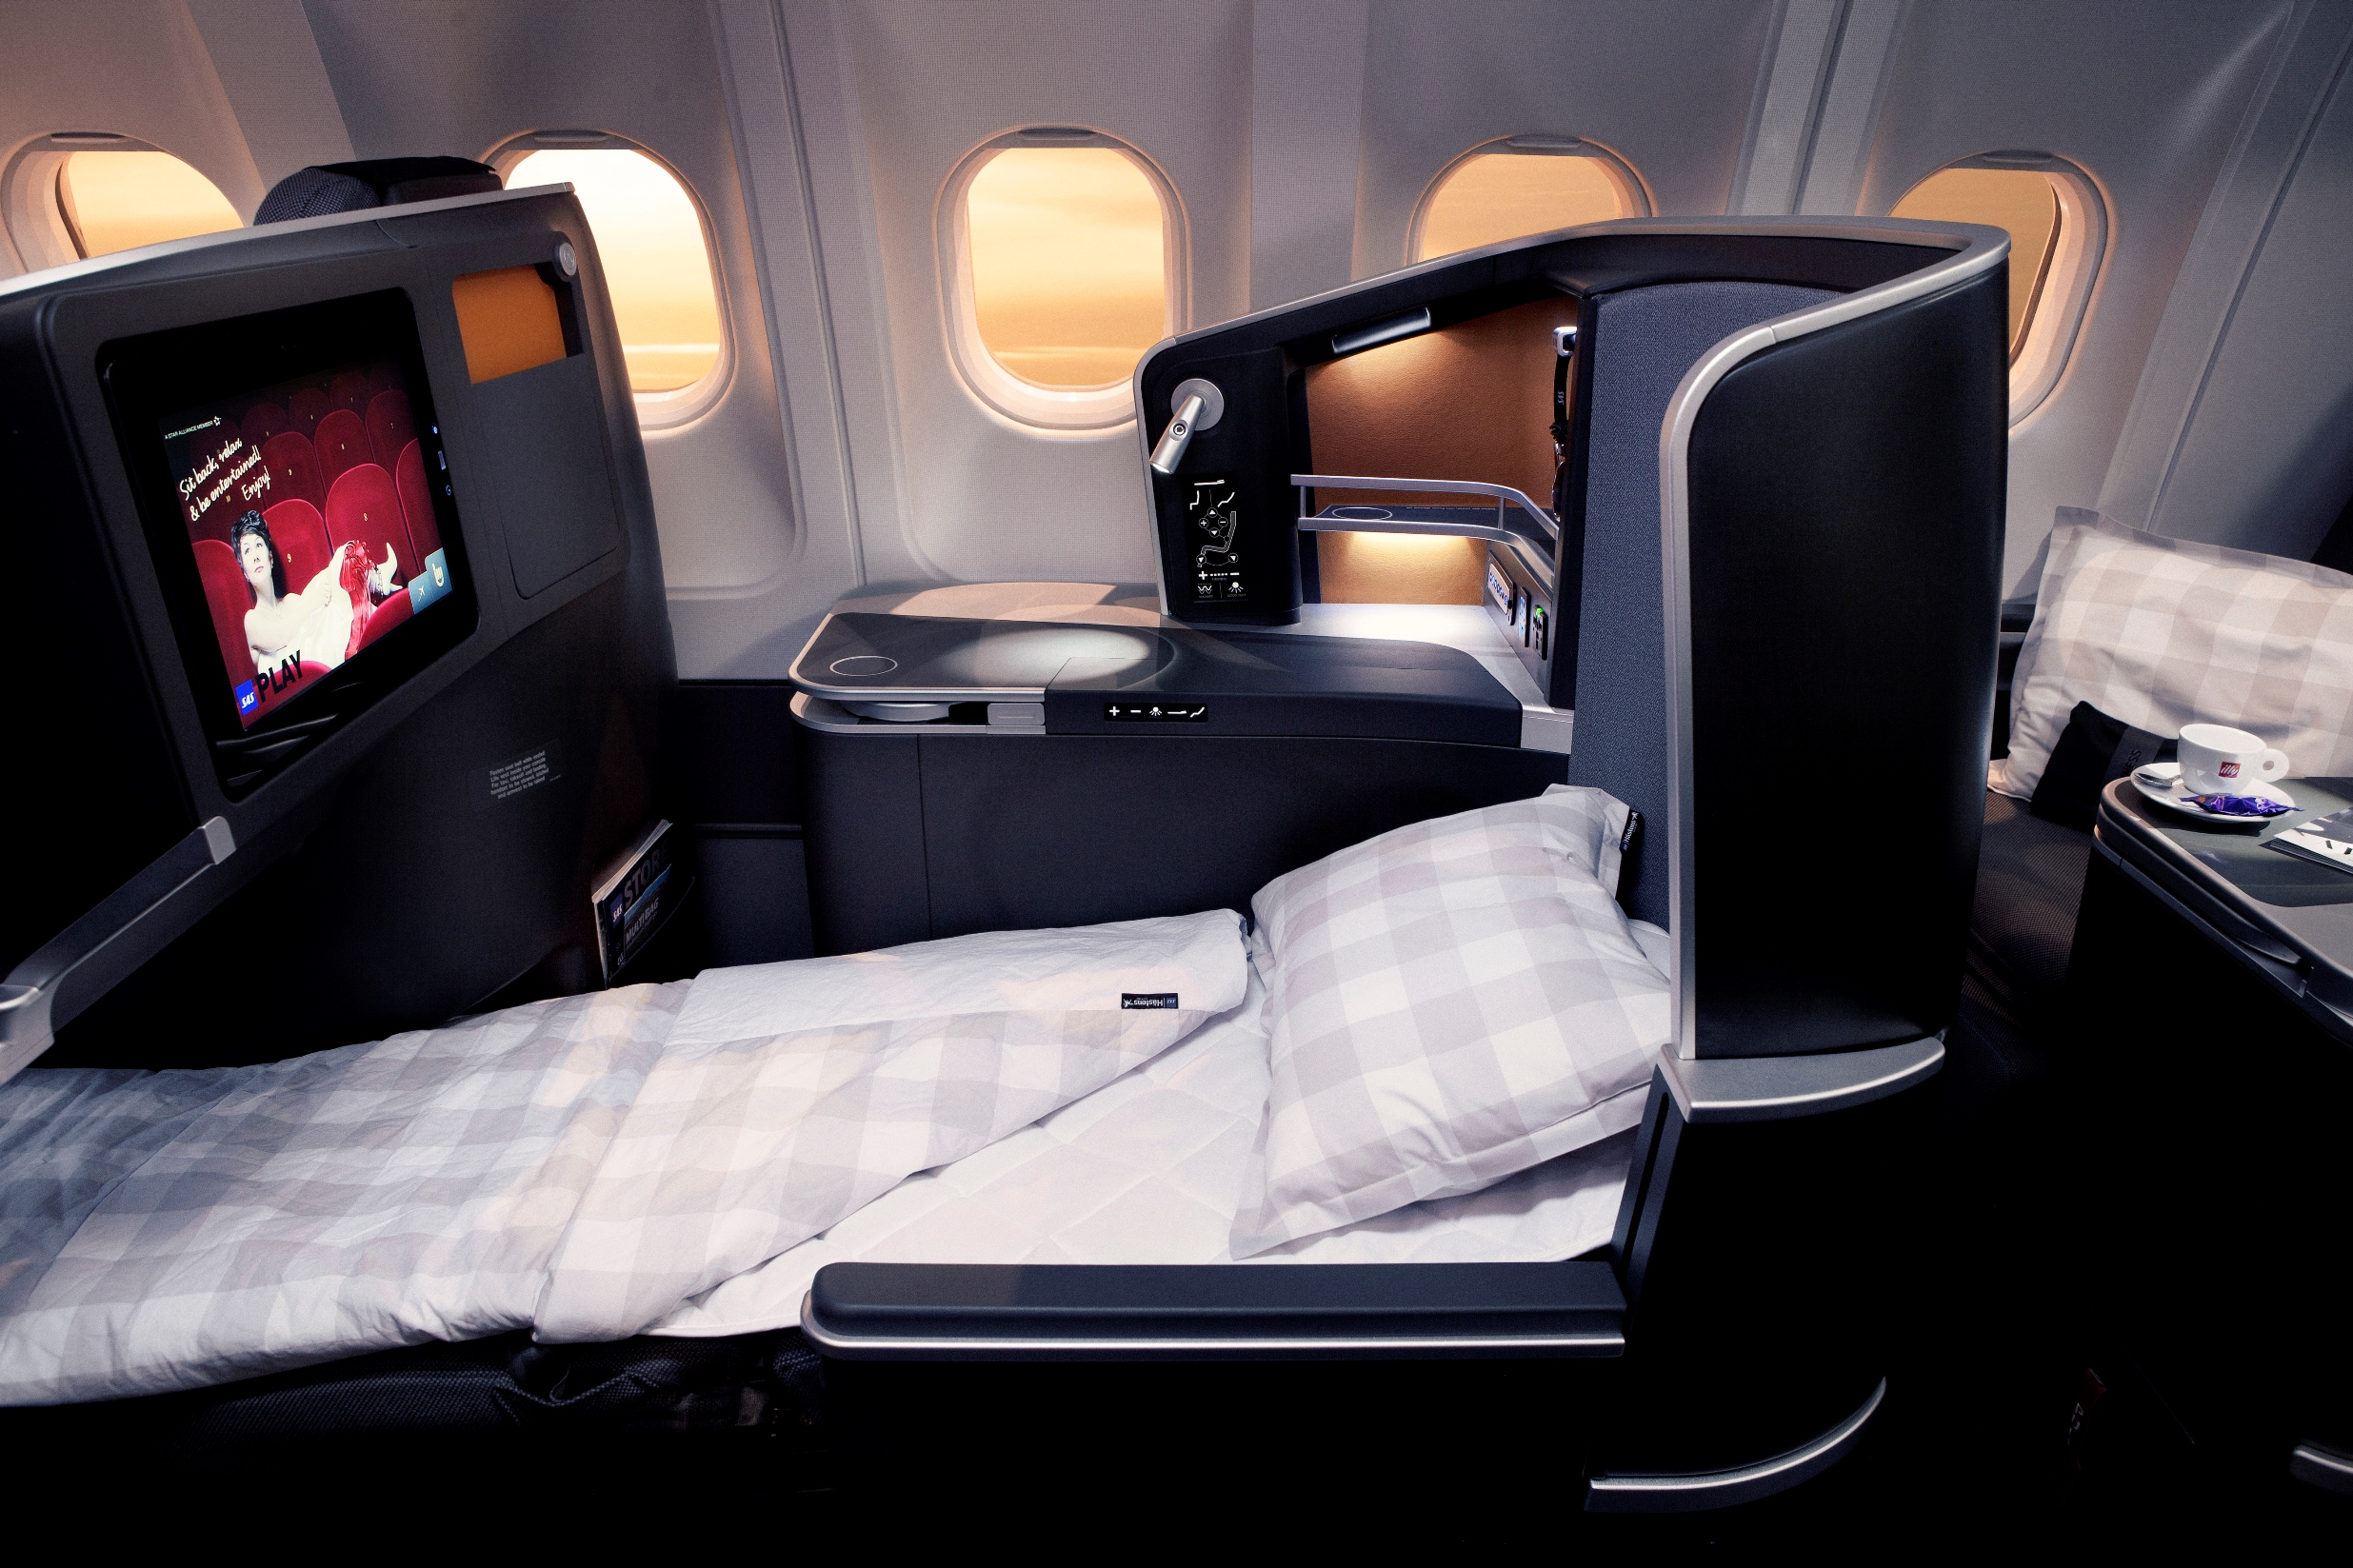 New a330 business class features h 228 stens bedding and a snack bar